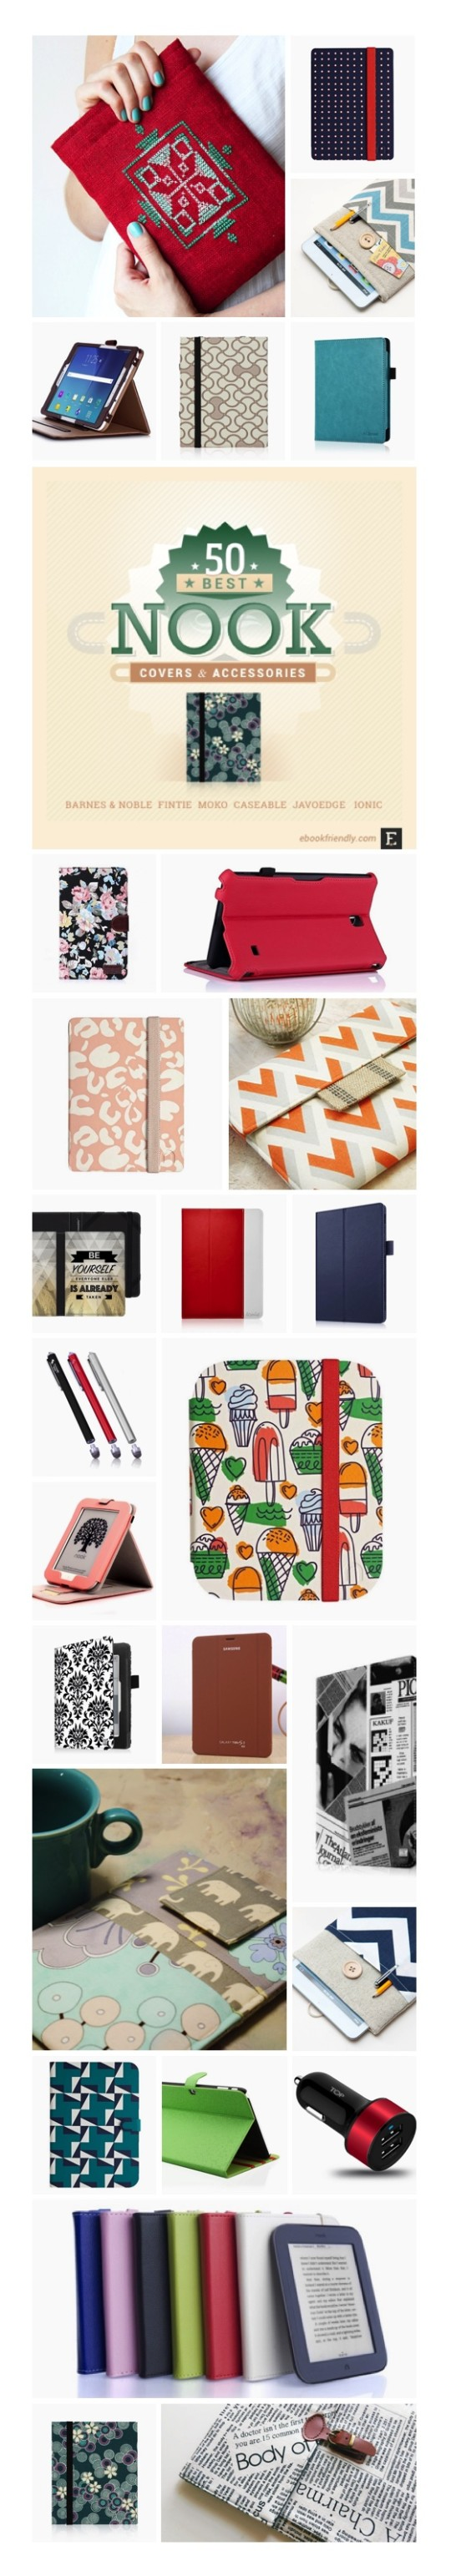 Best Nook case covers and accessories #infographic